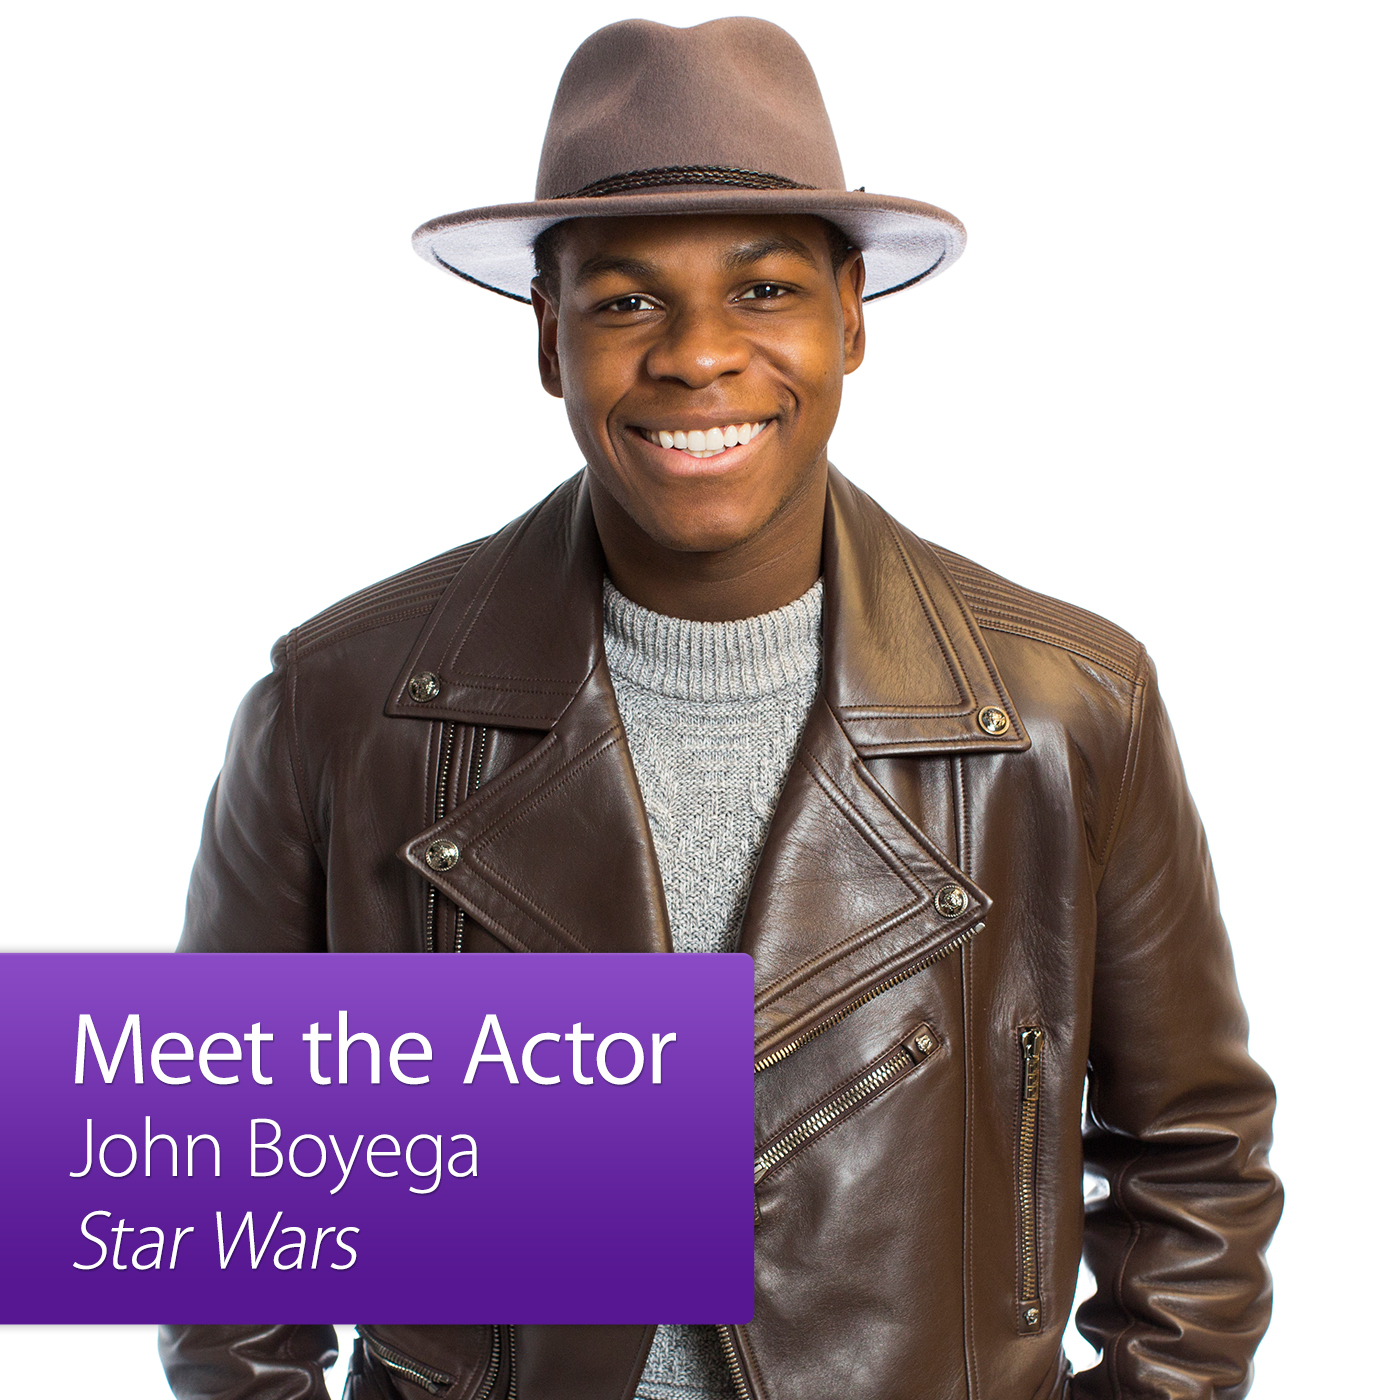 Meet the Actor: John Boyega,